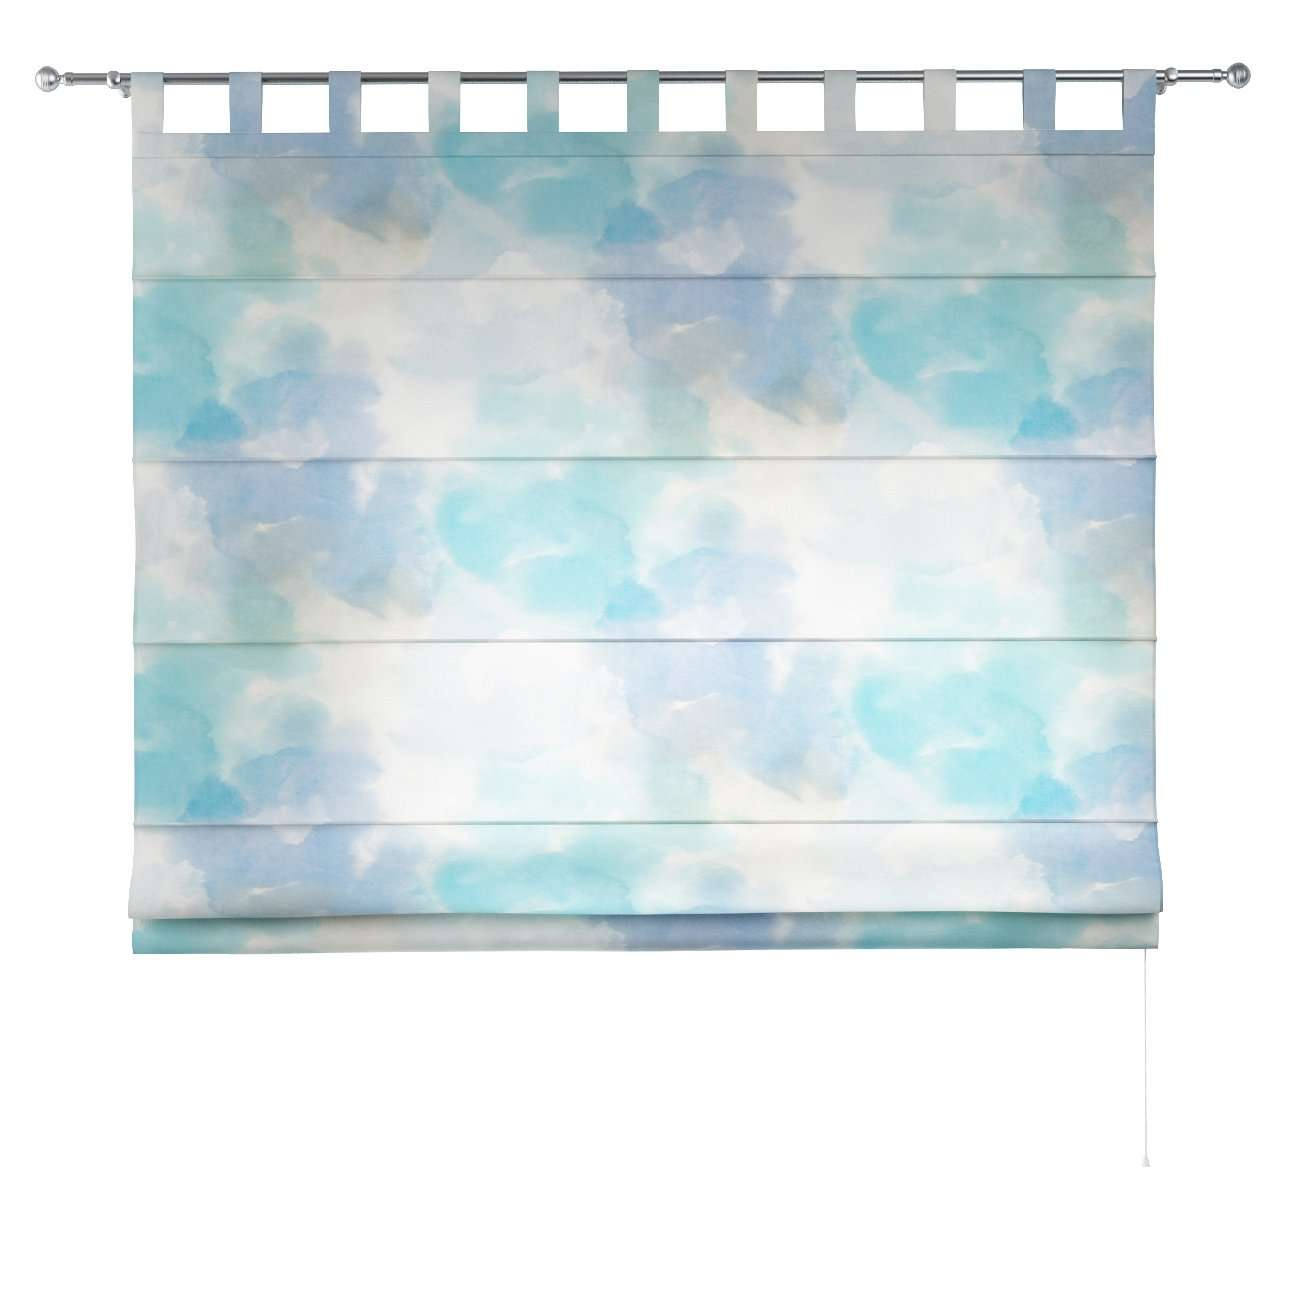 Verona tab top roman blind 80 x 170 cm (31.5 x 67 inch) in collection Aquarelle, fabric: 140-67